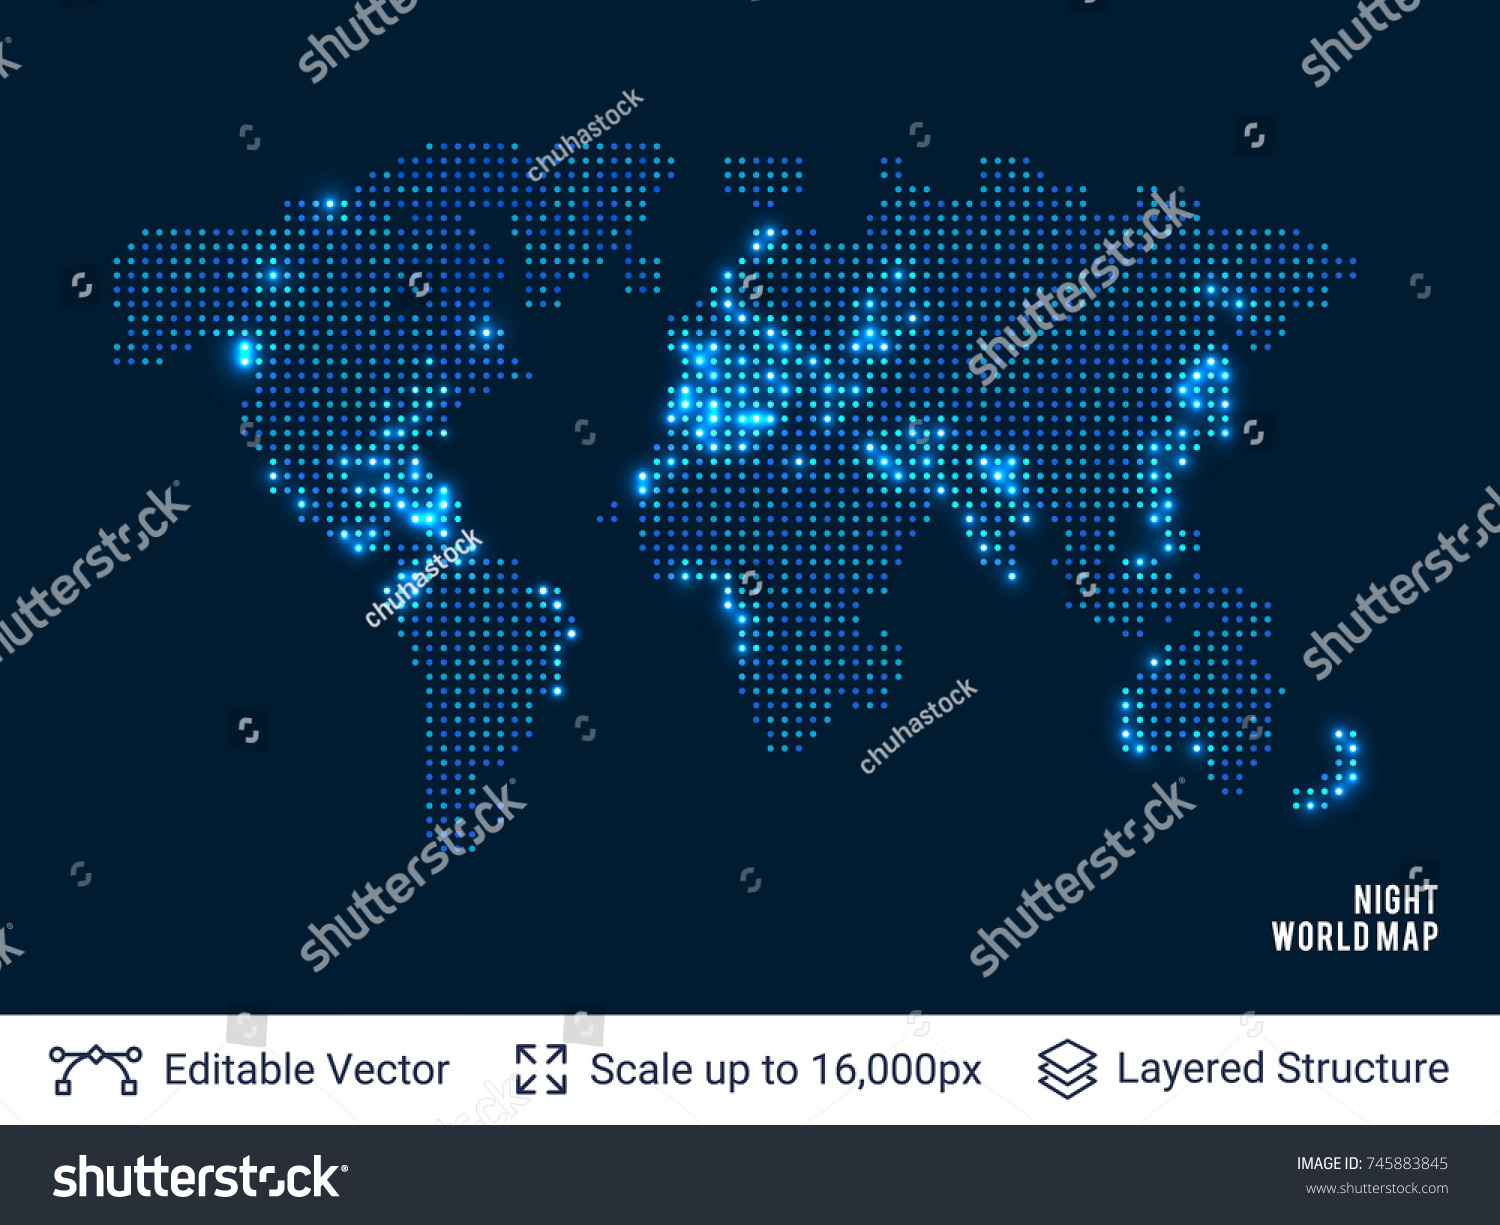 Dotted blank black world map world vectores en stock 745883845 dotted blank black world map world map vector design template flat earth map background gumiabroncs Images